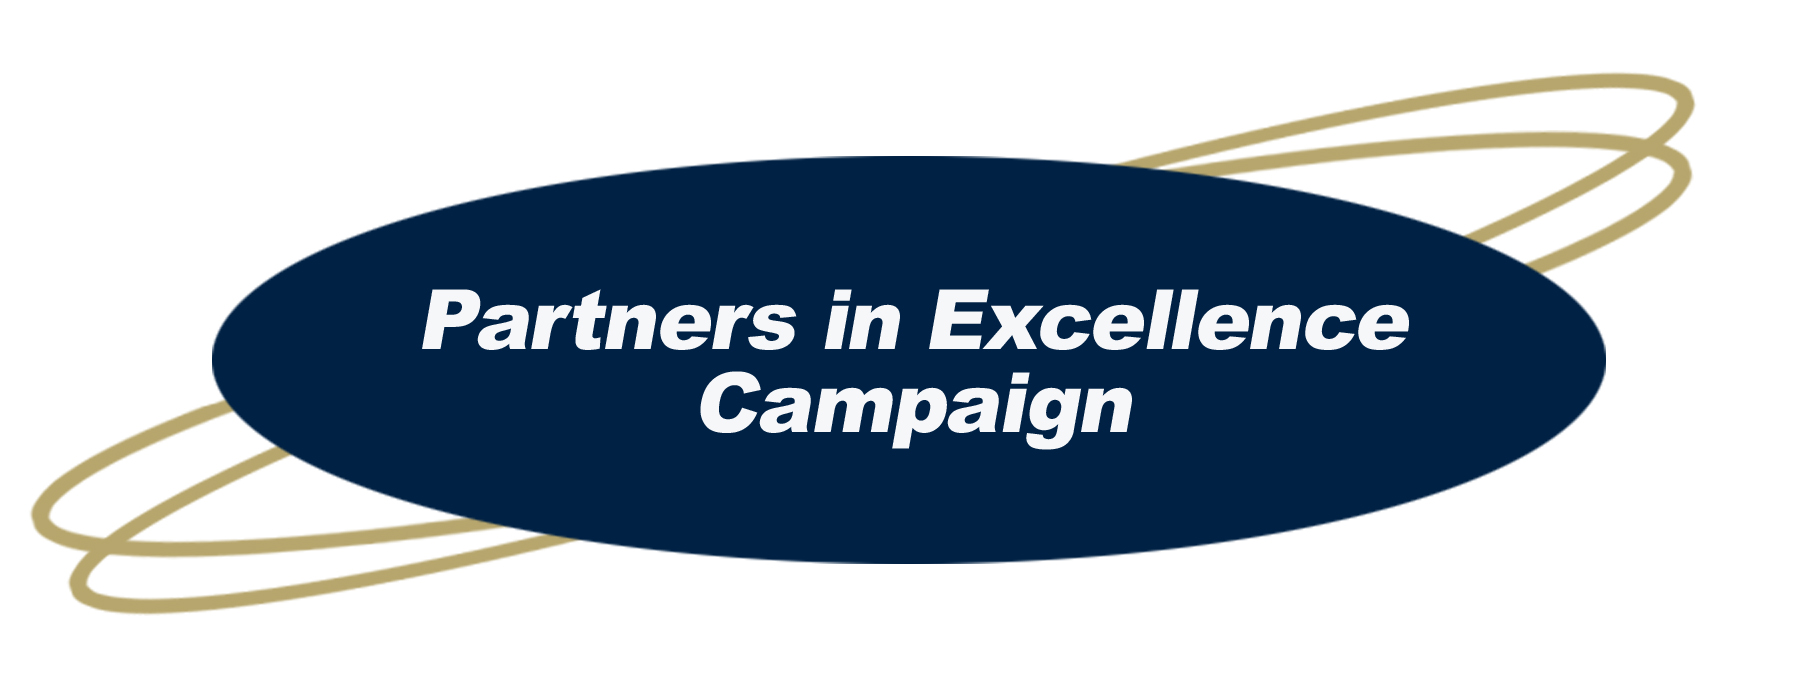 Partners in Excellence Campaign